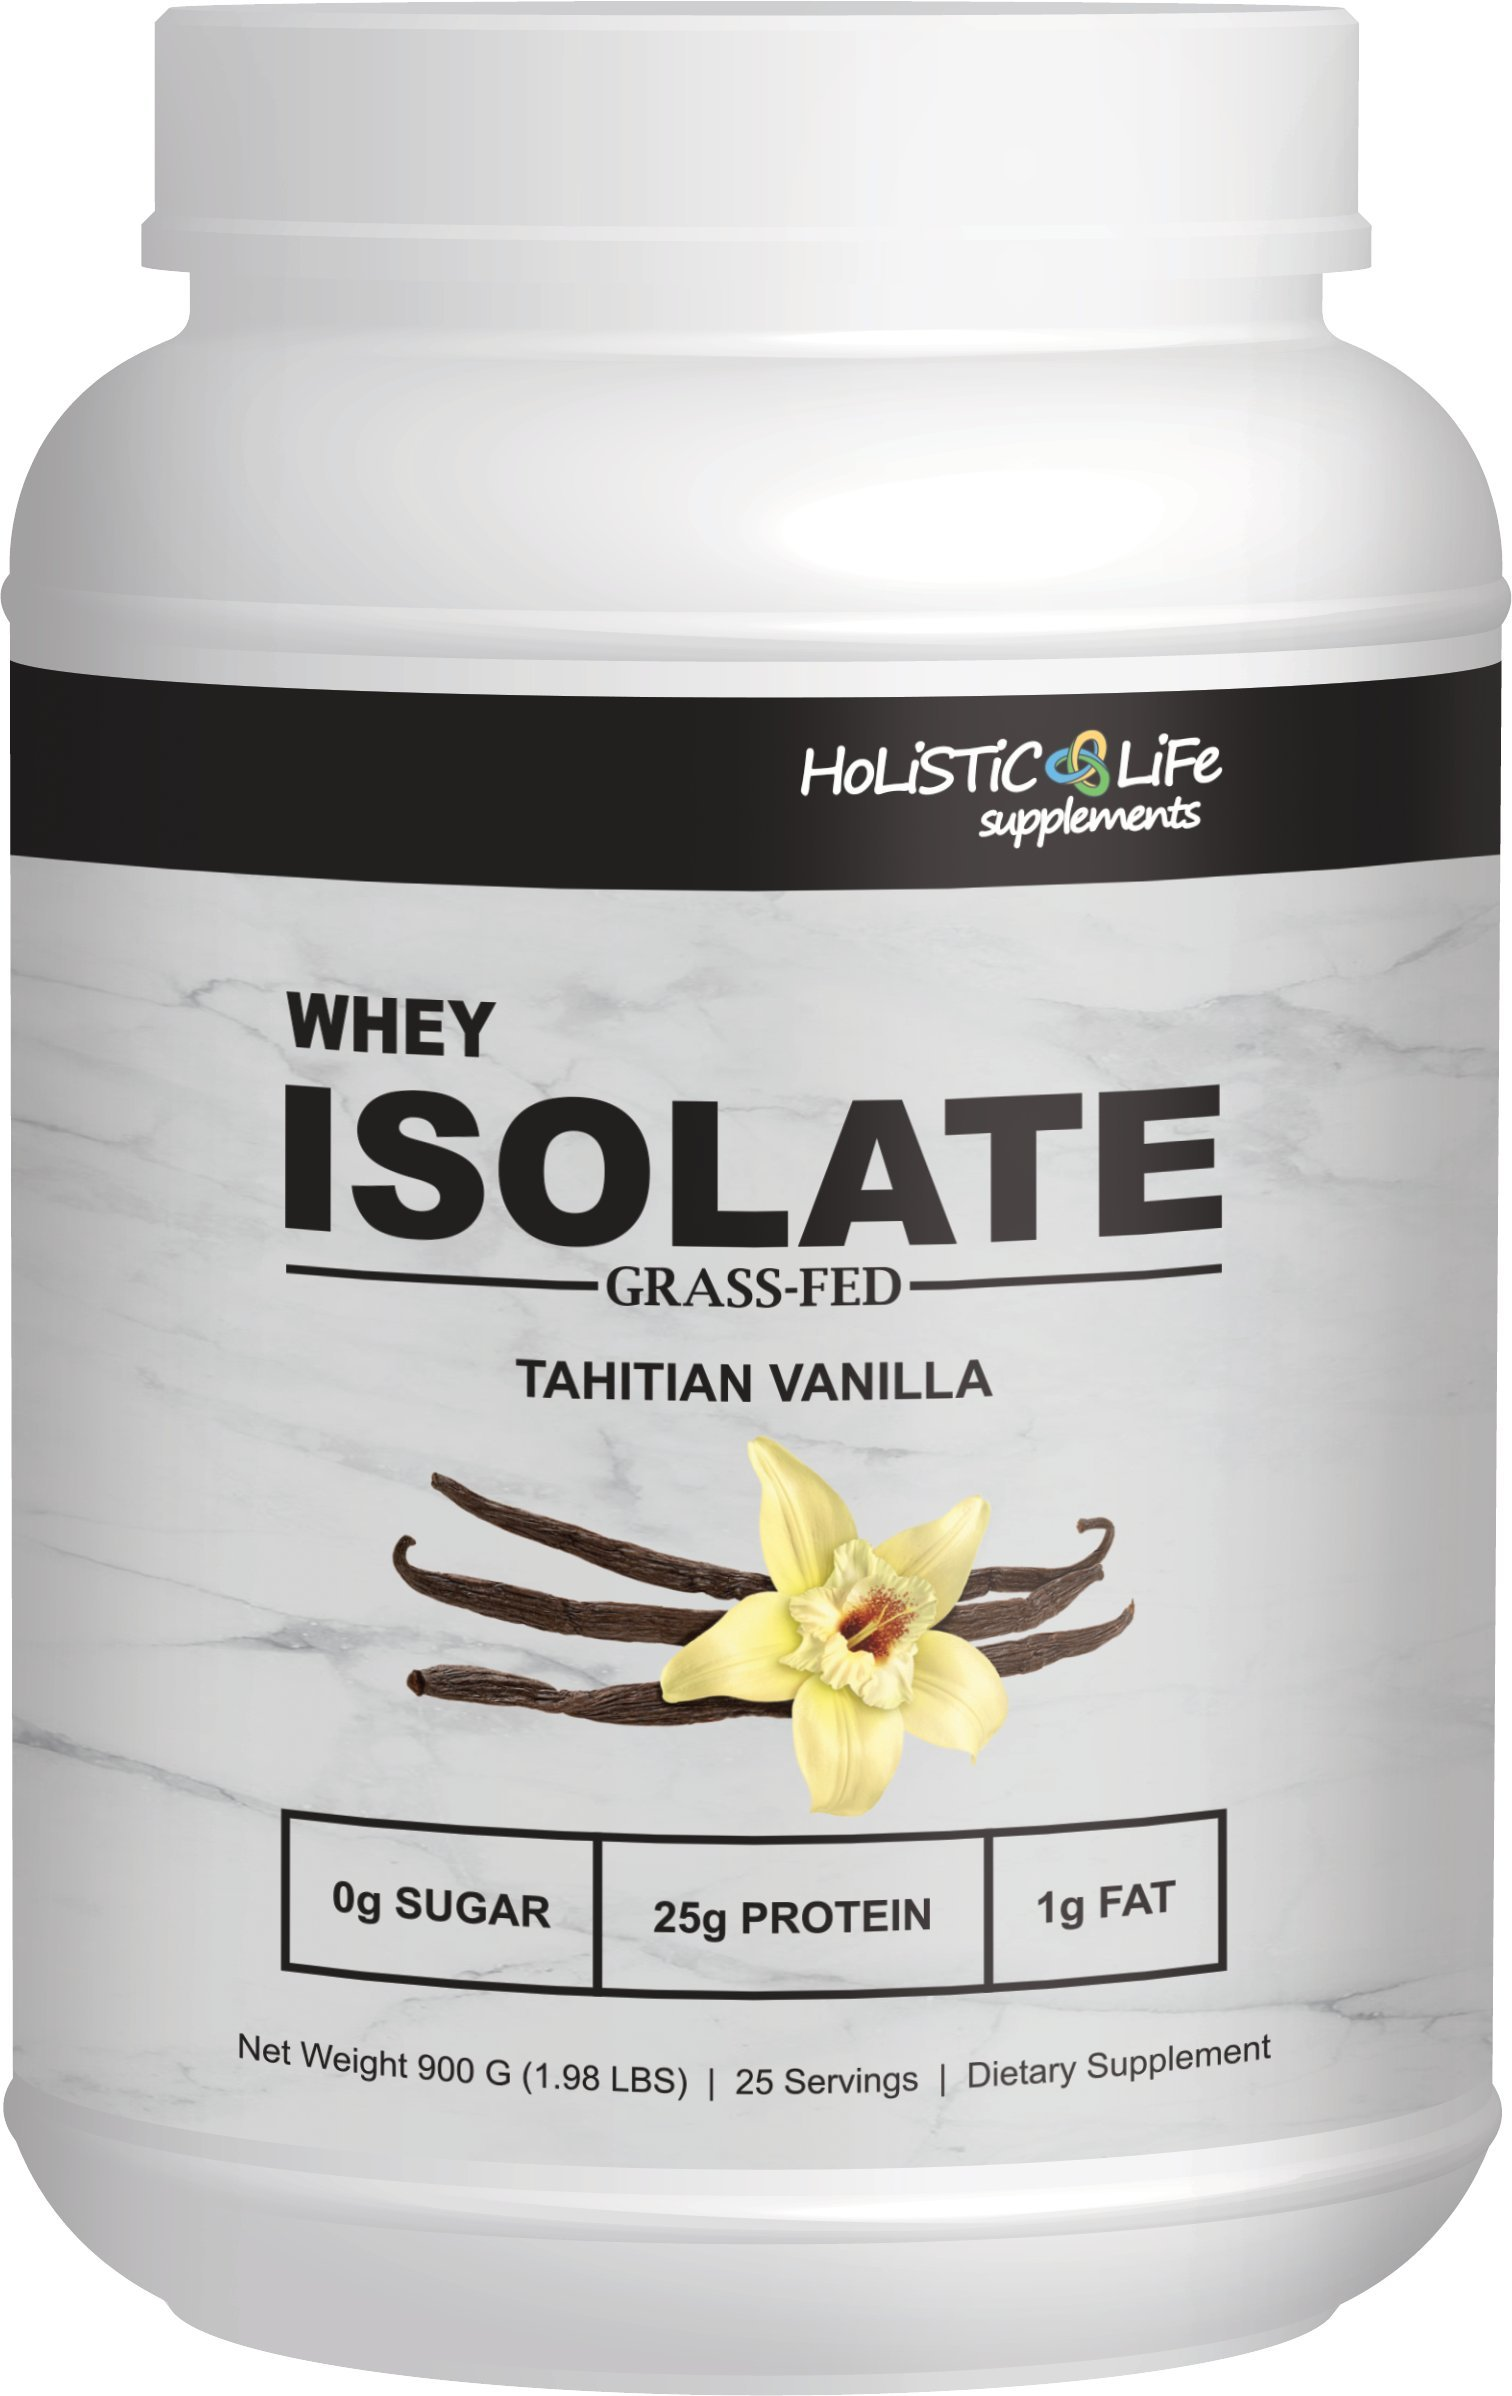 2 lbs Grass Fed Whey Protein Isolate, Tahitian Vanilla, All Natural, Low Carb, Highest Quality Ingredients